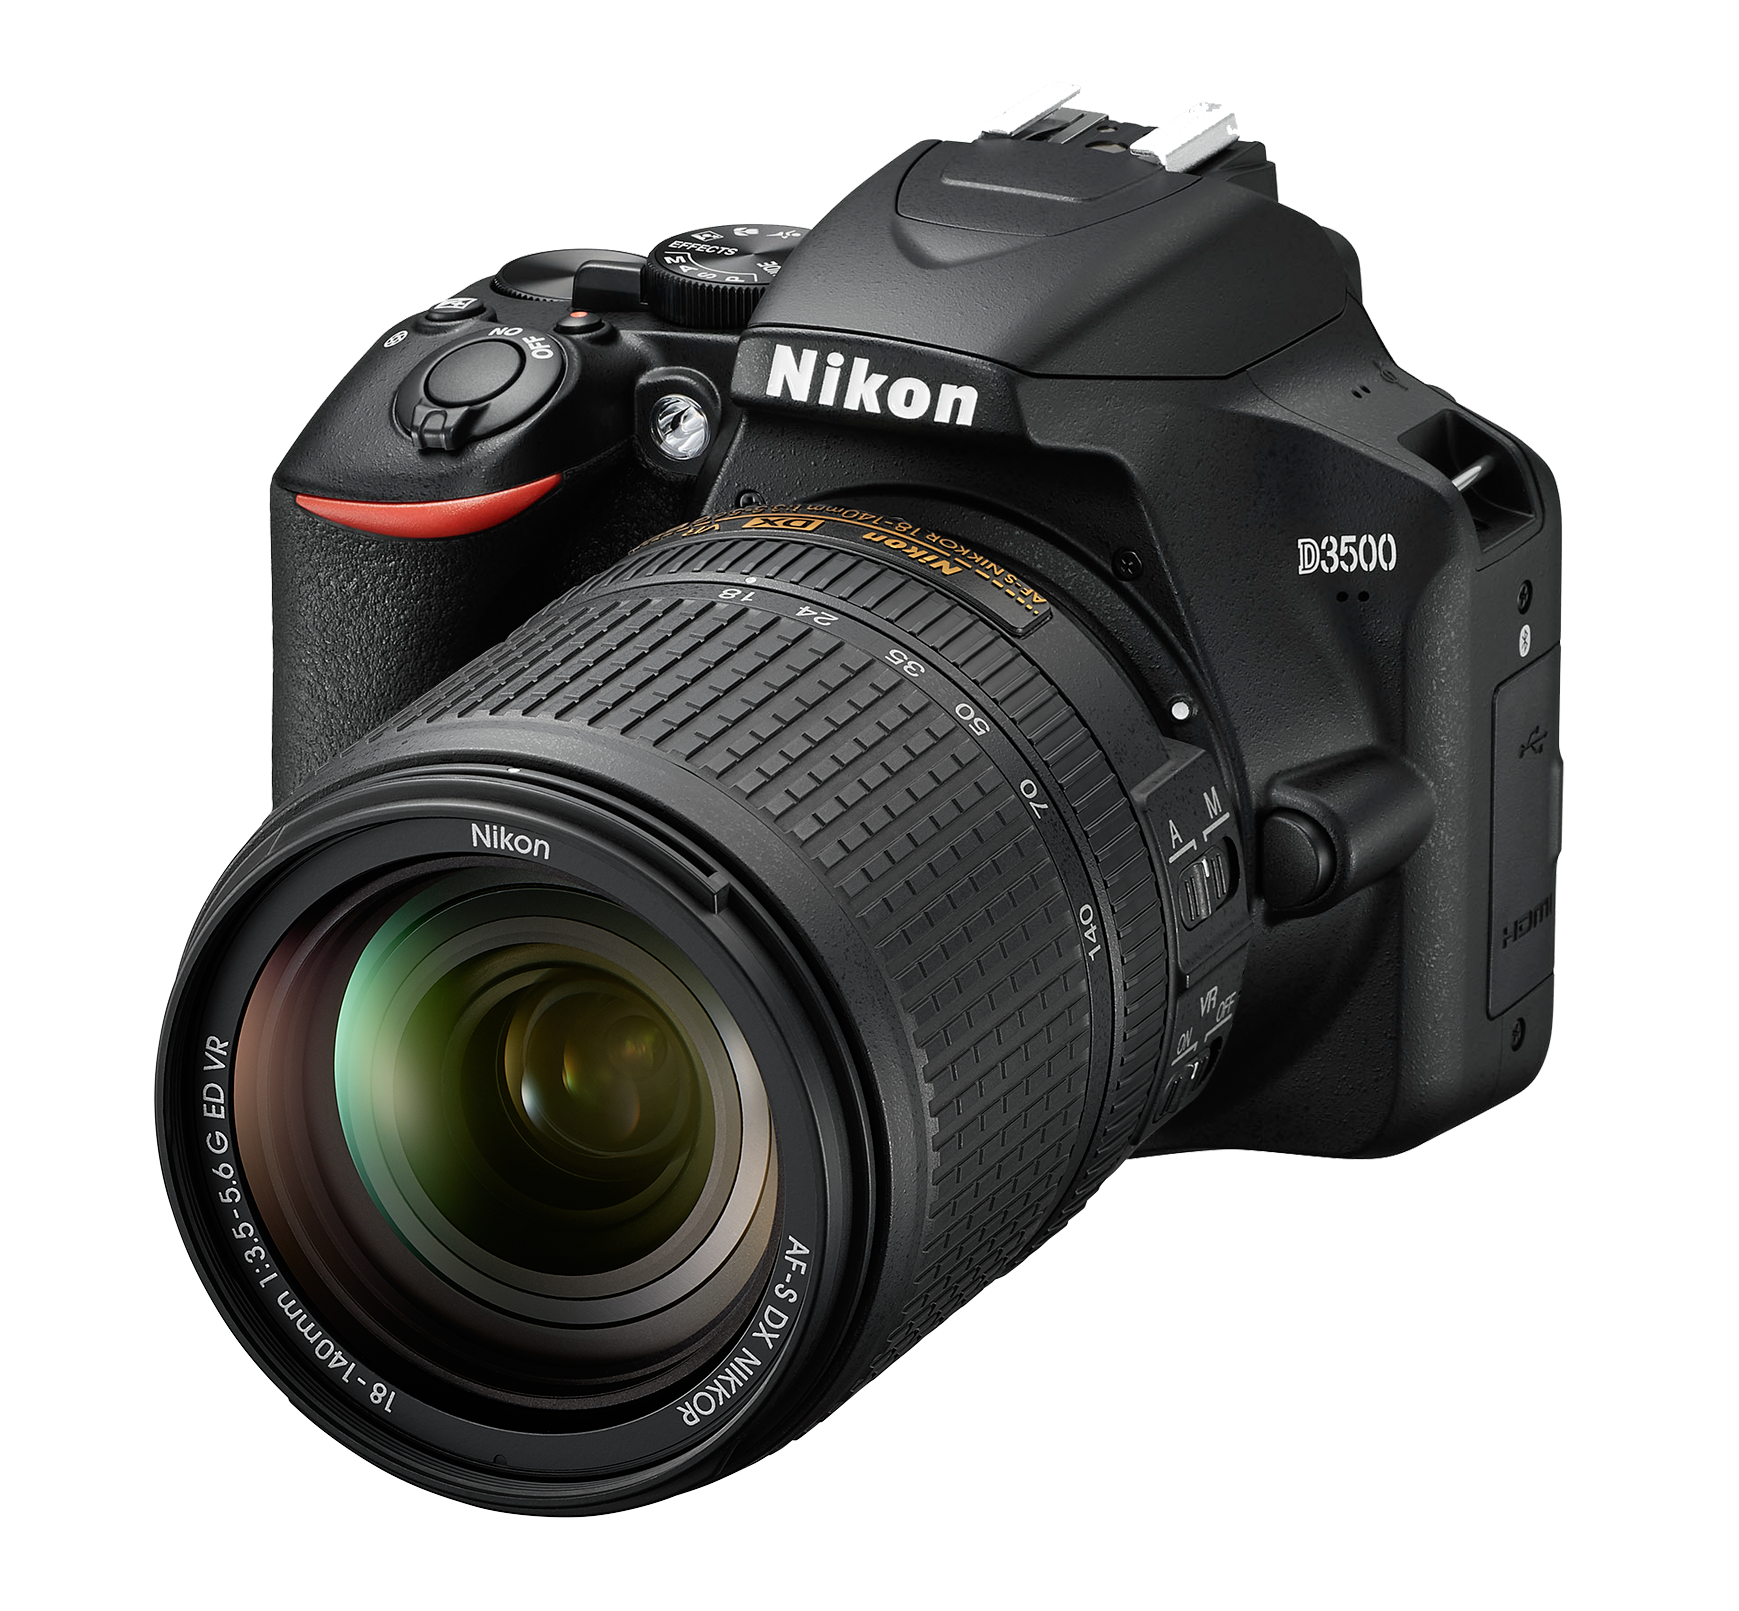 Nikon D3500 Kit AF-S DX 18-140mm f/3.5-5.6G ED VR от Nikon